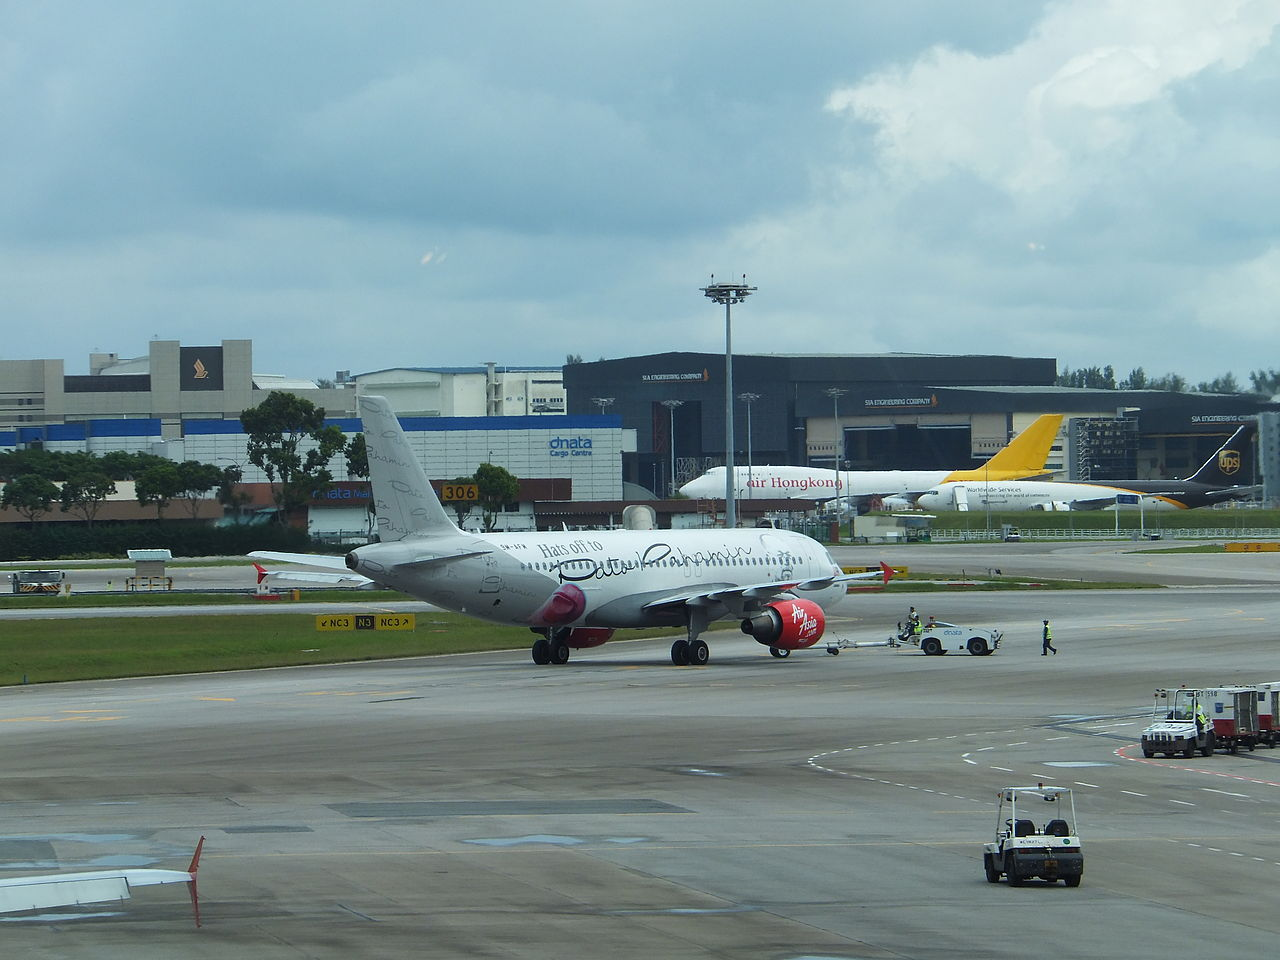 Blue apron singapore - File Airasia Airbus A320 216 9m Afm Leaving Apron By Tractor In Singapore Changi Airport 20130211 Jpg